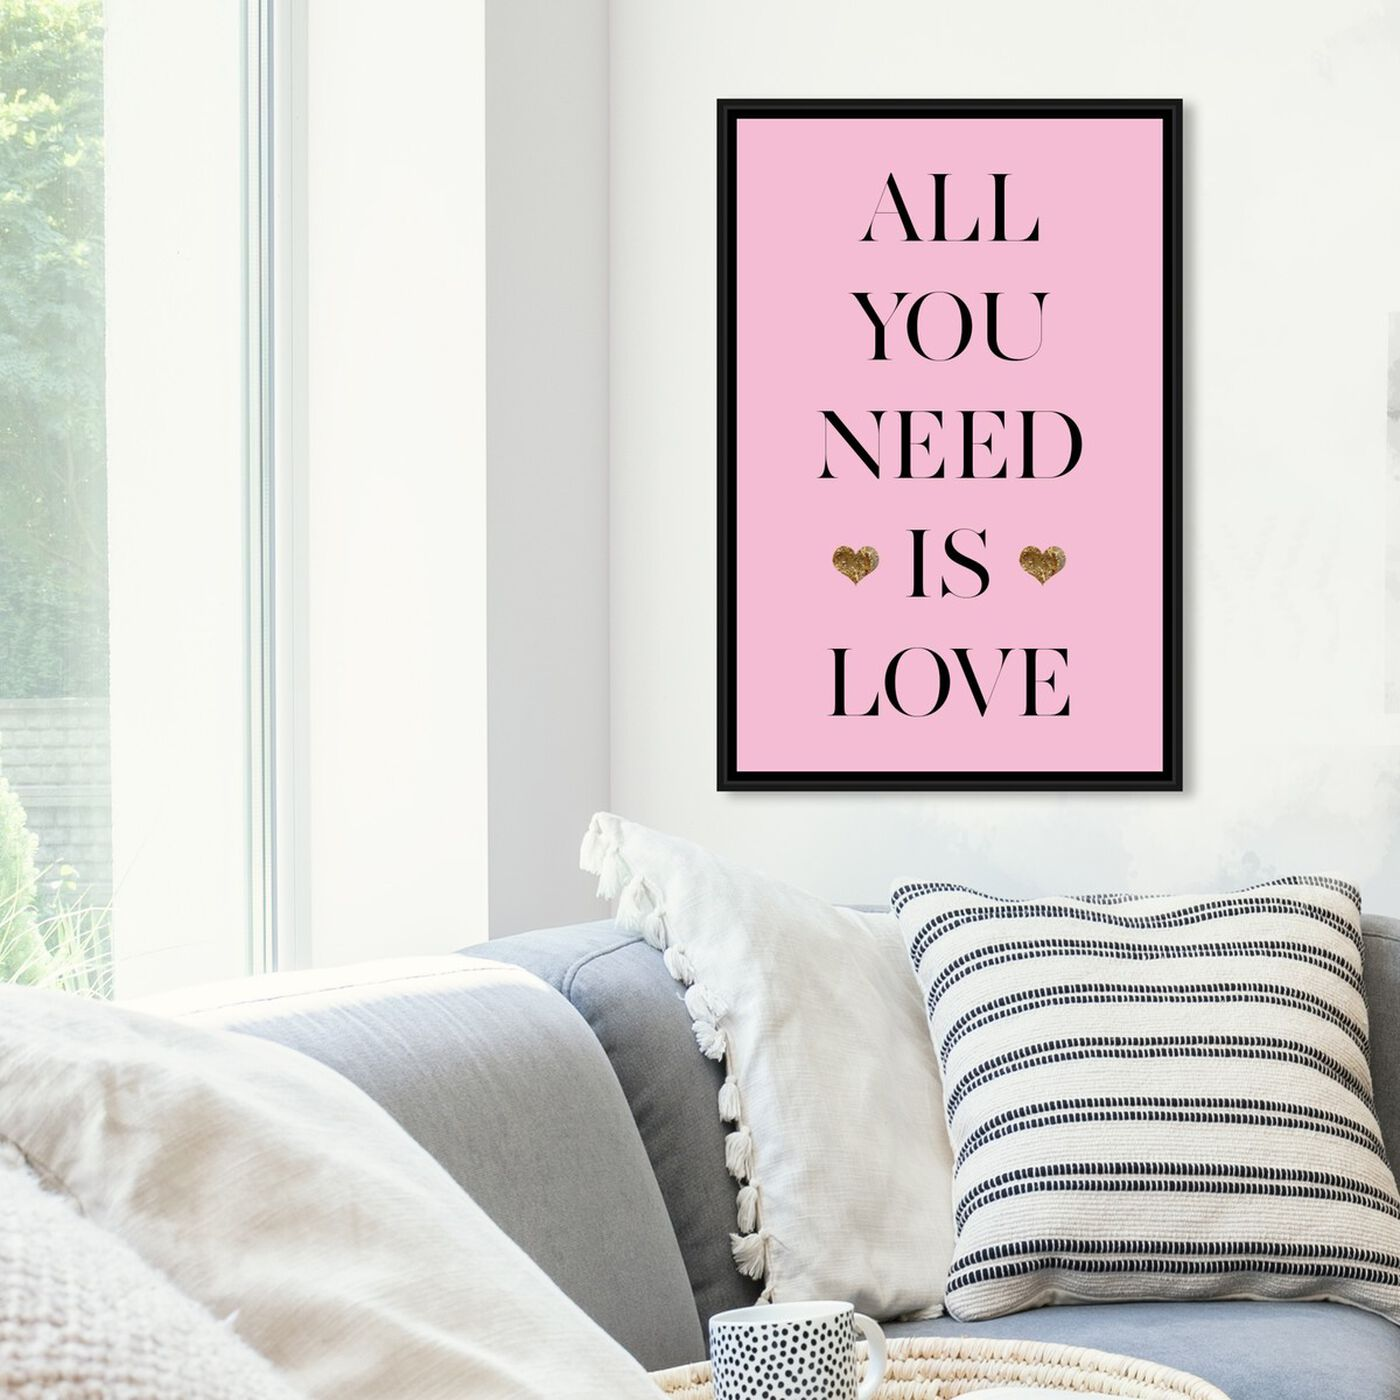 Hanging view of All You Need  featuring typography and quotes and love quotes and sayings art.